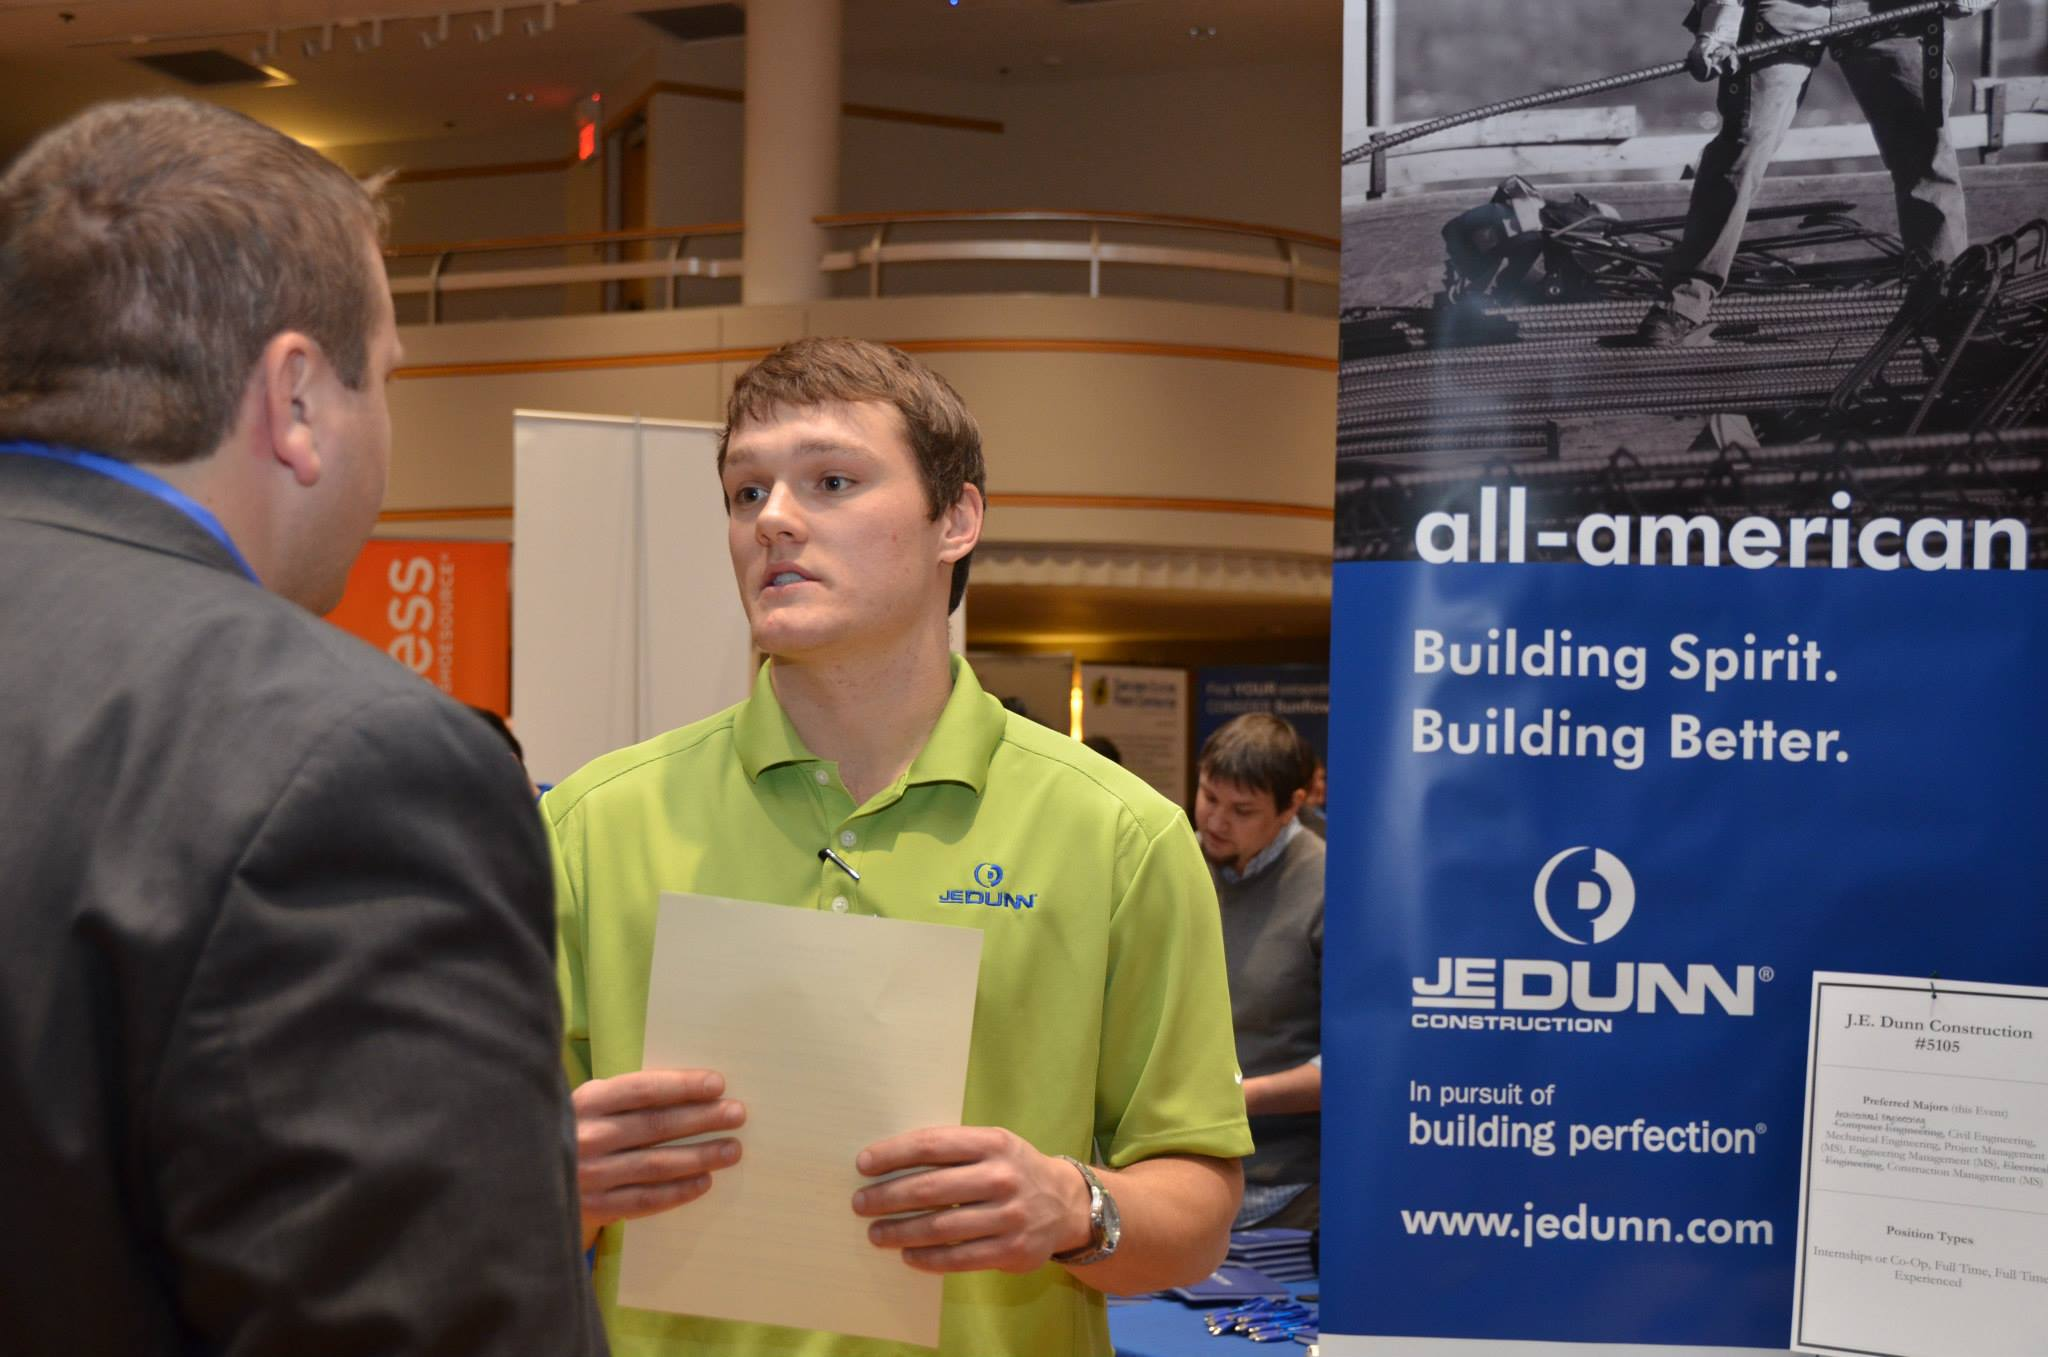 JE Dunn team at a conference